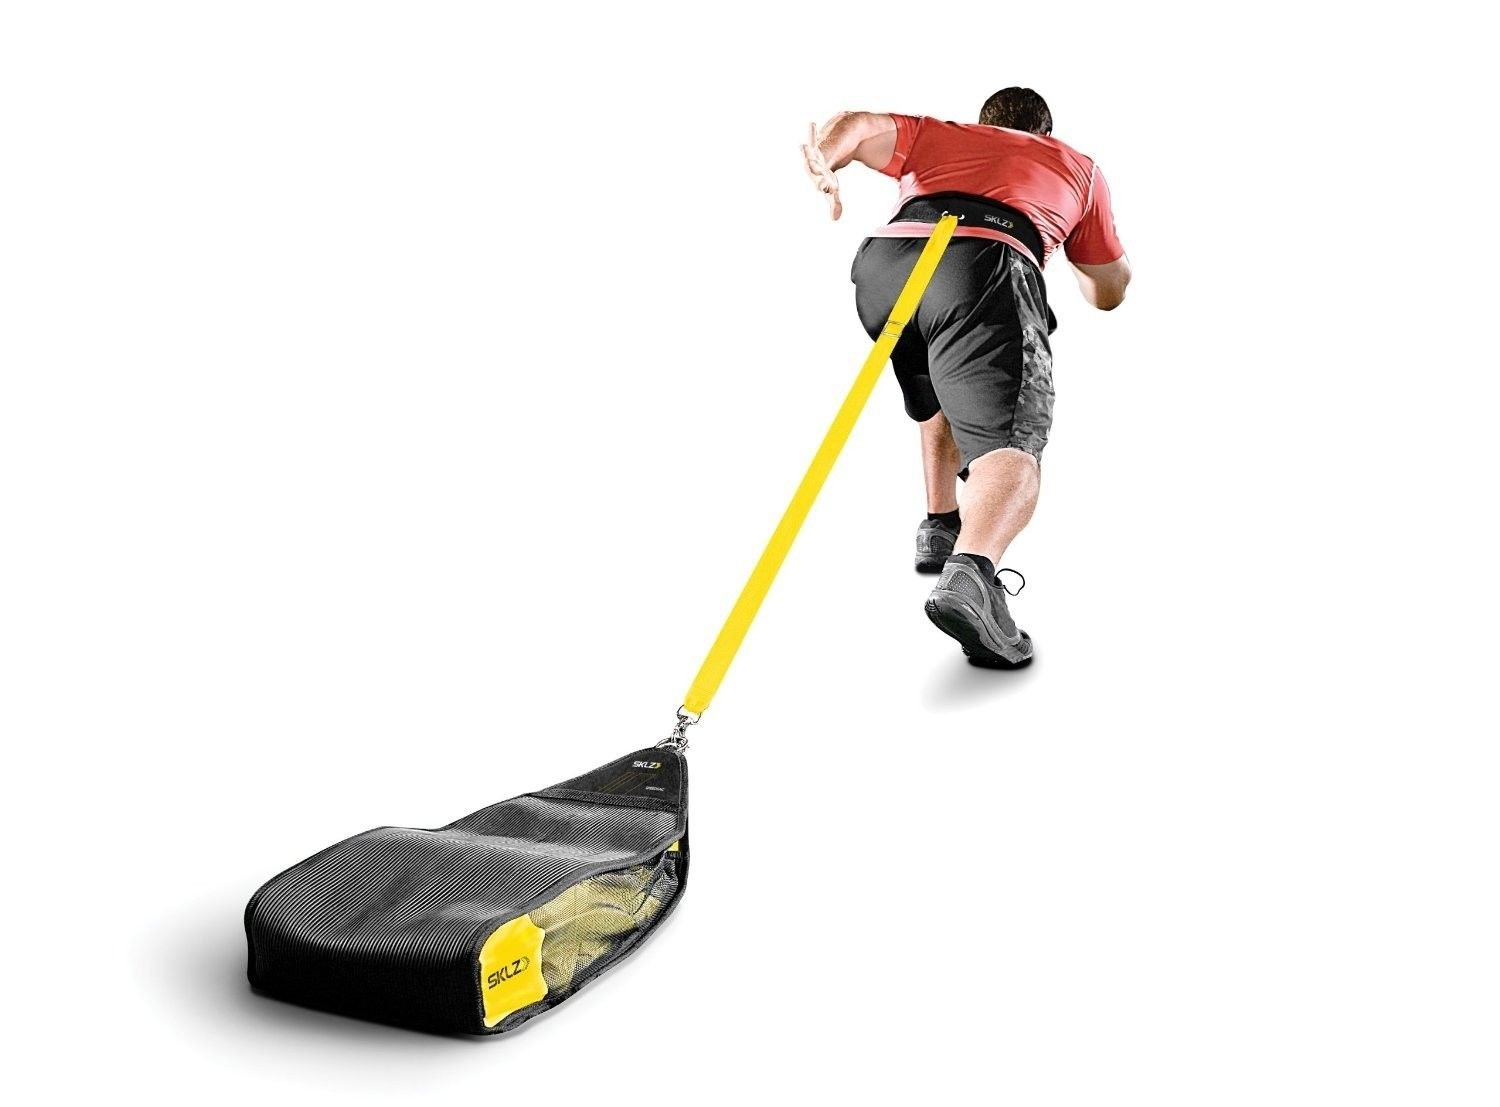 Indoor Outdoor Sprint Speed Strengthen Trainer Durable Weight Drag Bag Pull Sled